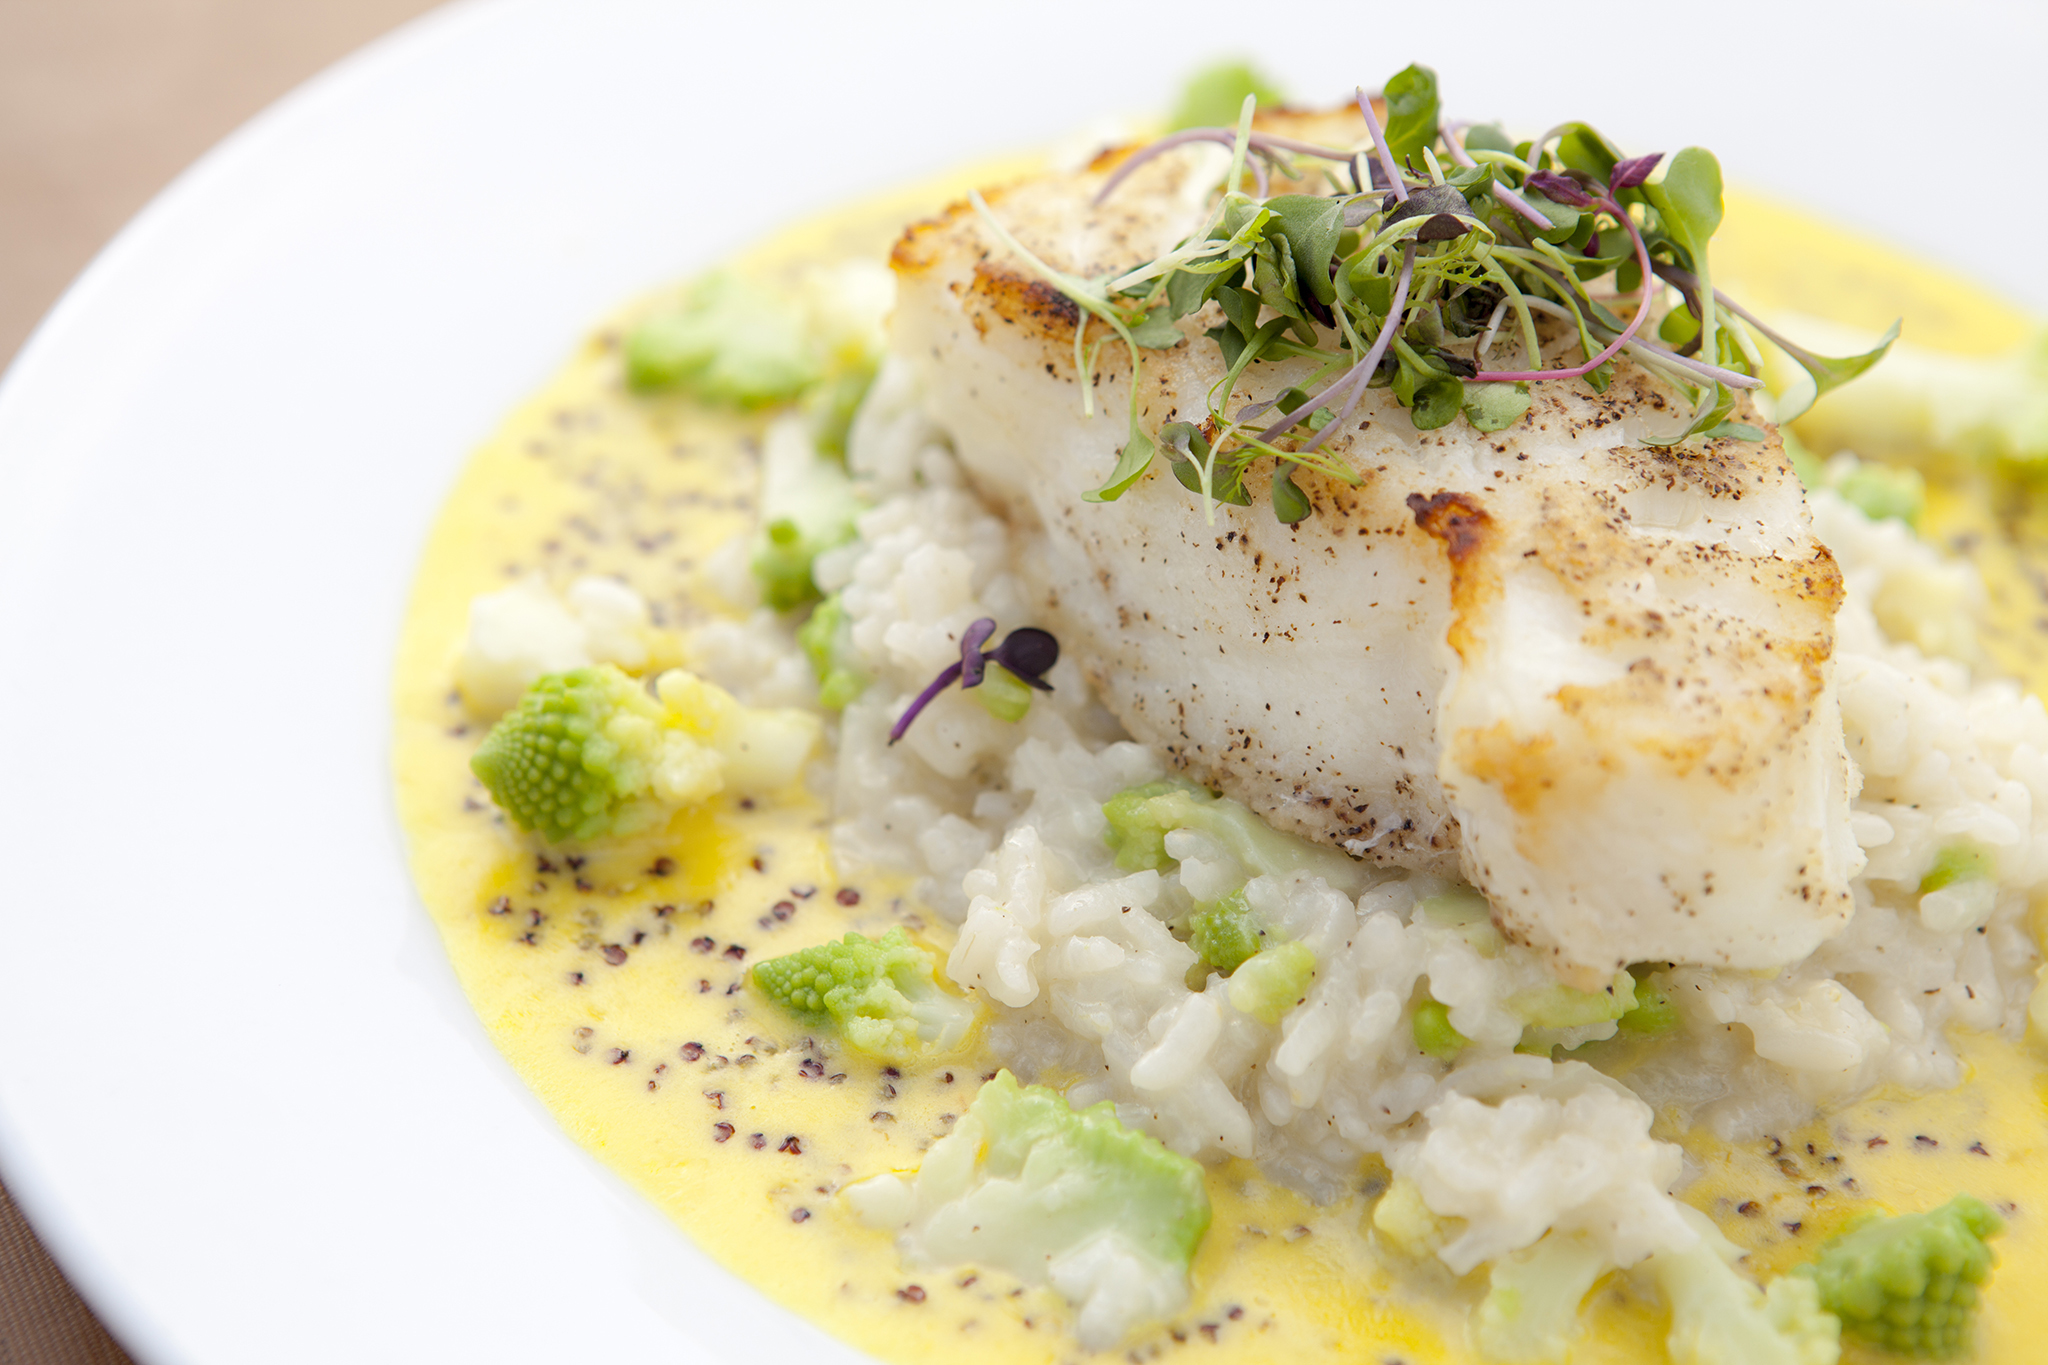 Chilean sea bass with risotto and saffron quinoa at Tra di noi